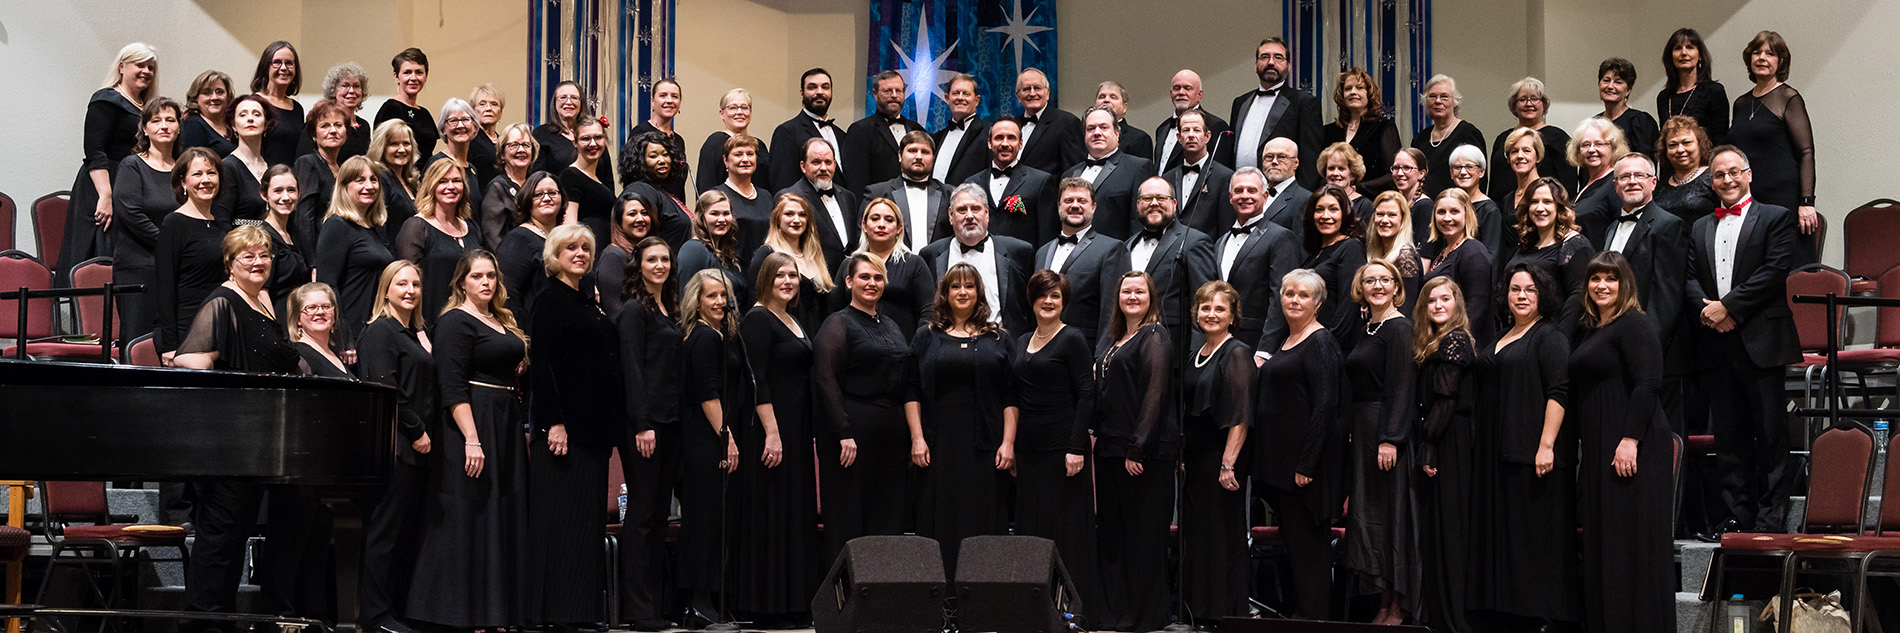 group_choir_edit_HHI_9756